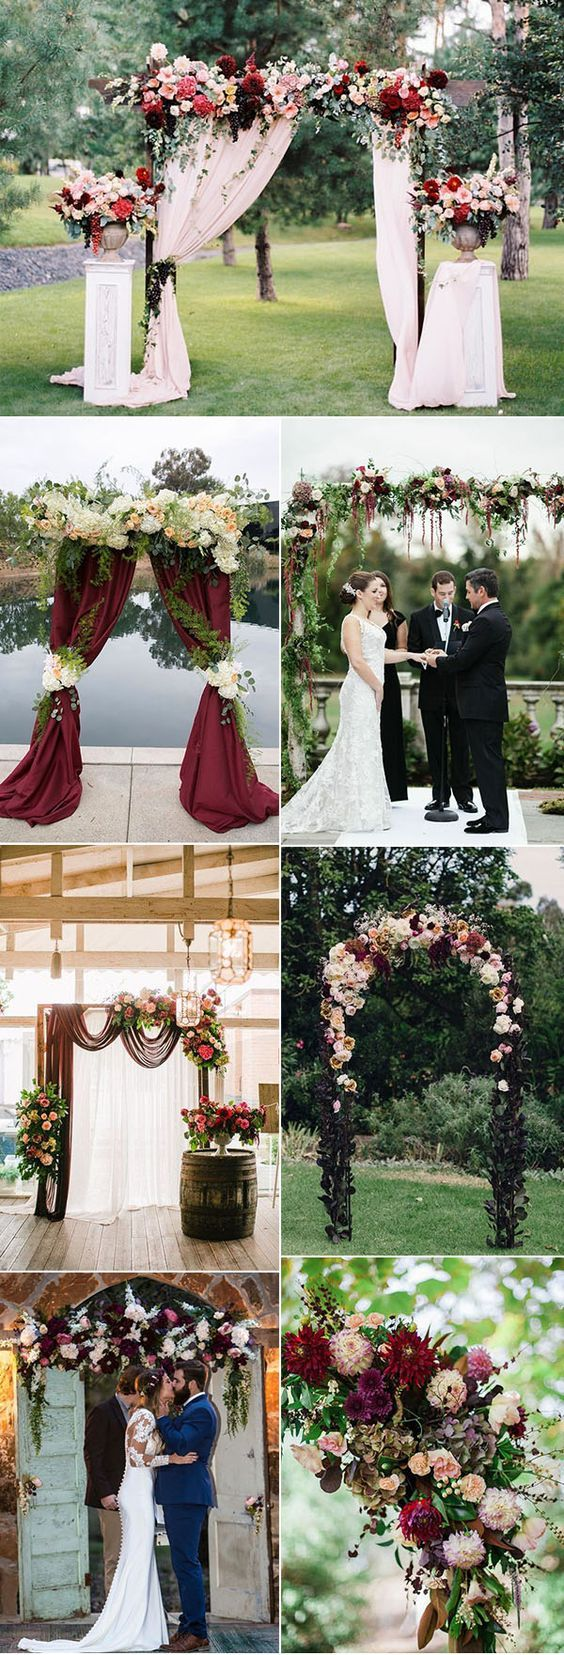 Mexican themed wedding dress  burgundy maroon and marsala wedding arch and altar ideas  wedding